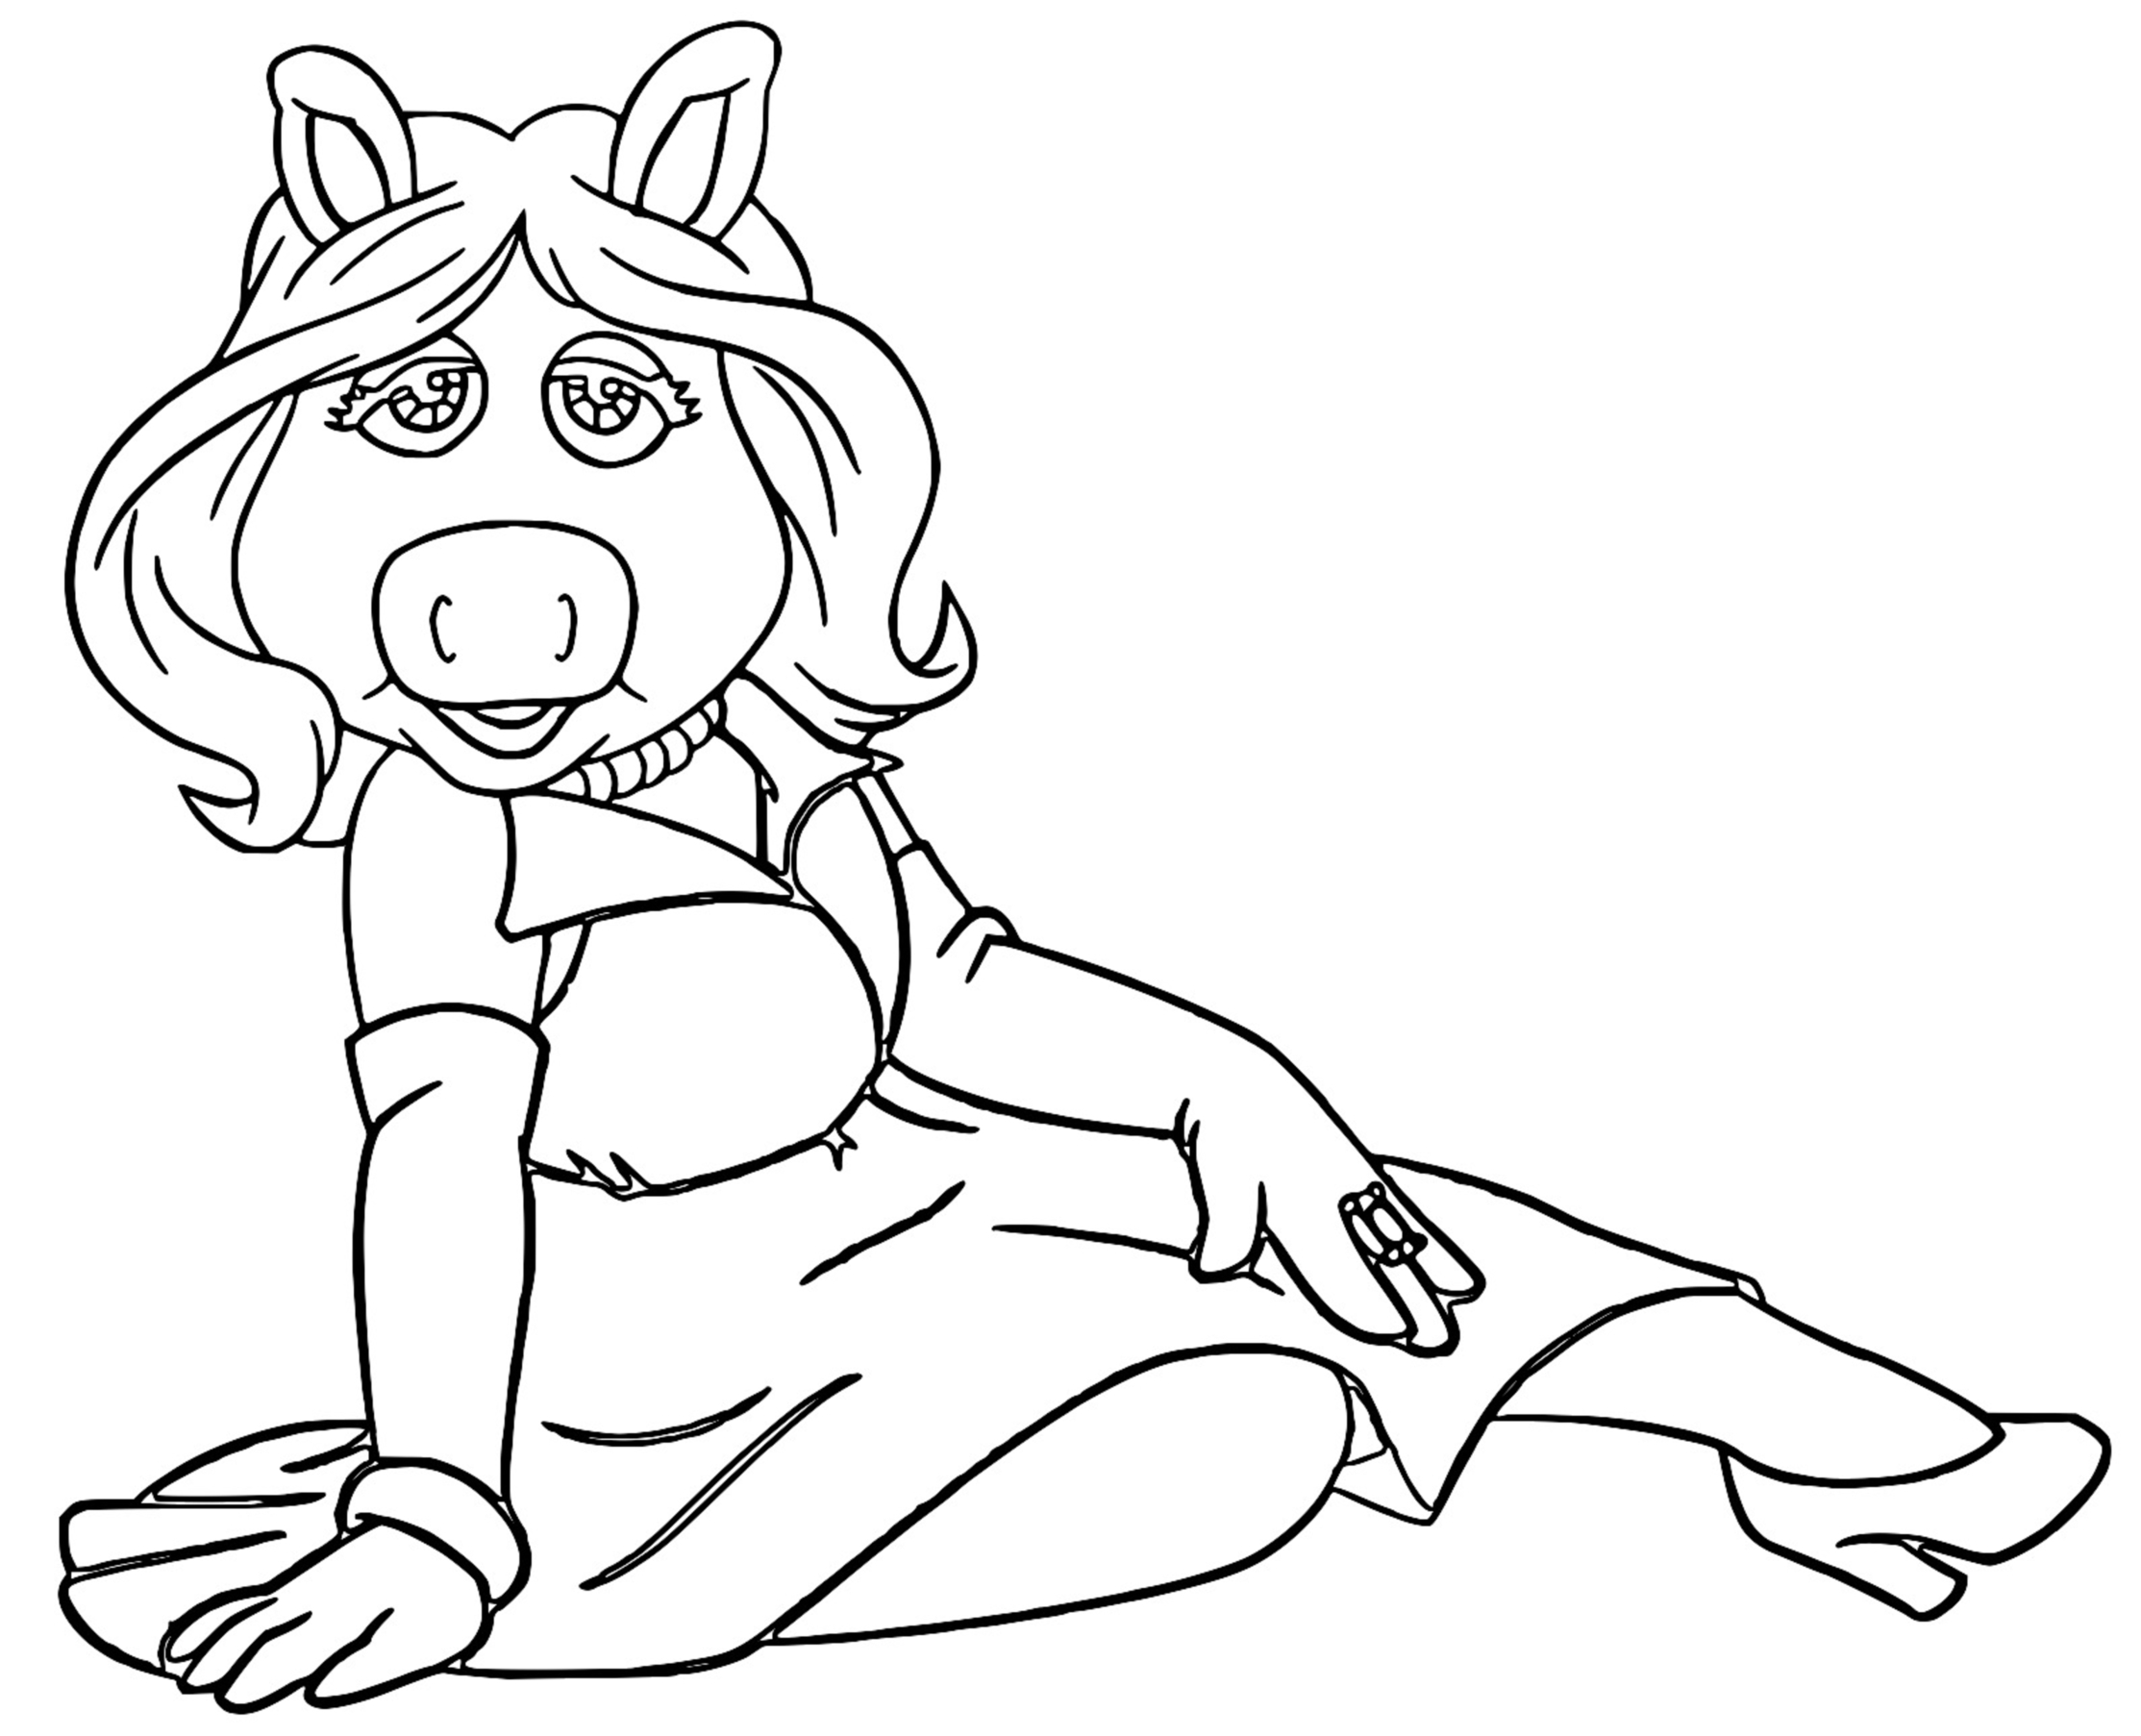 The Muppets miss piggy 2 Cartoon Coloring Page